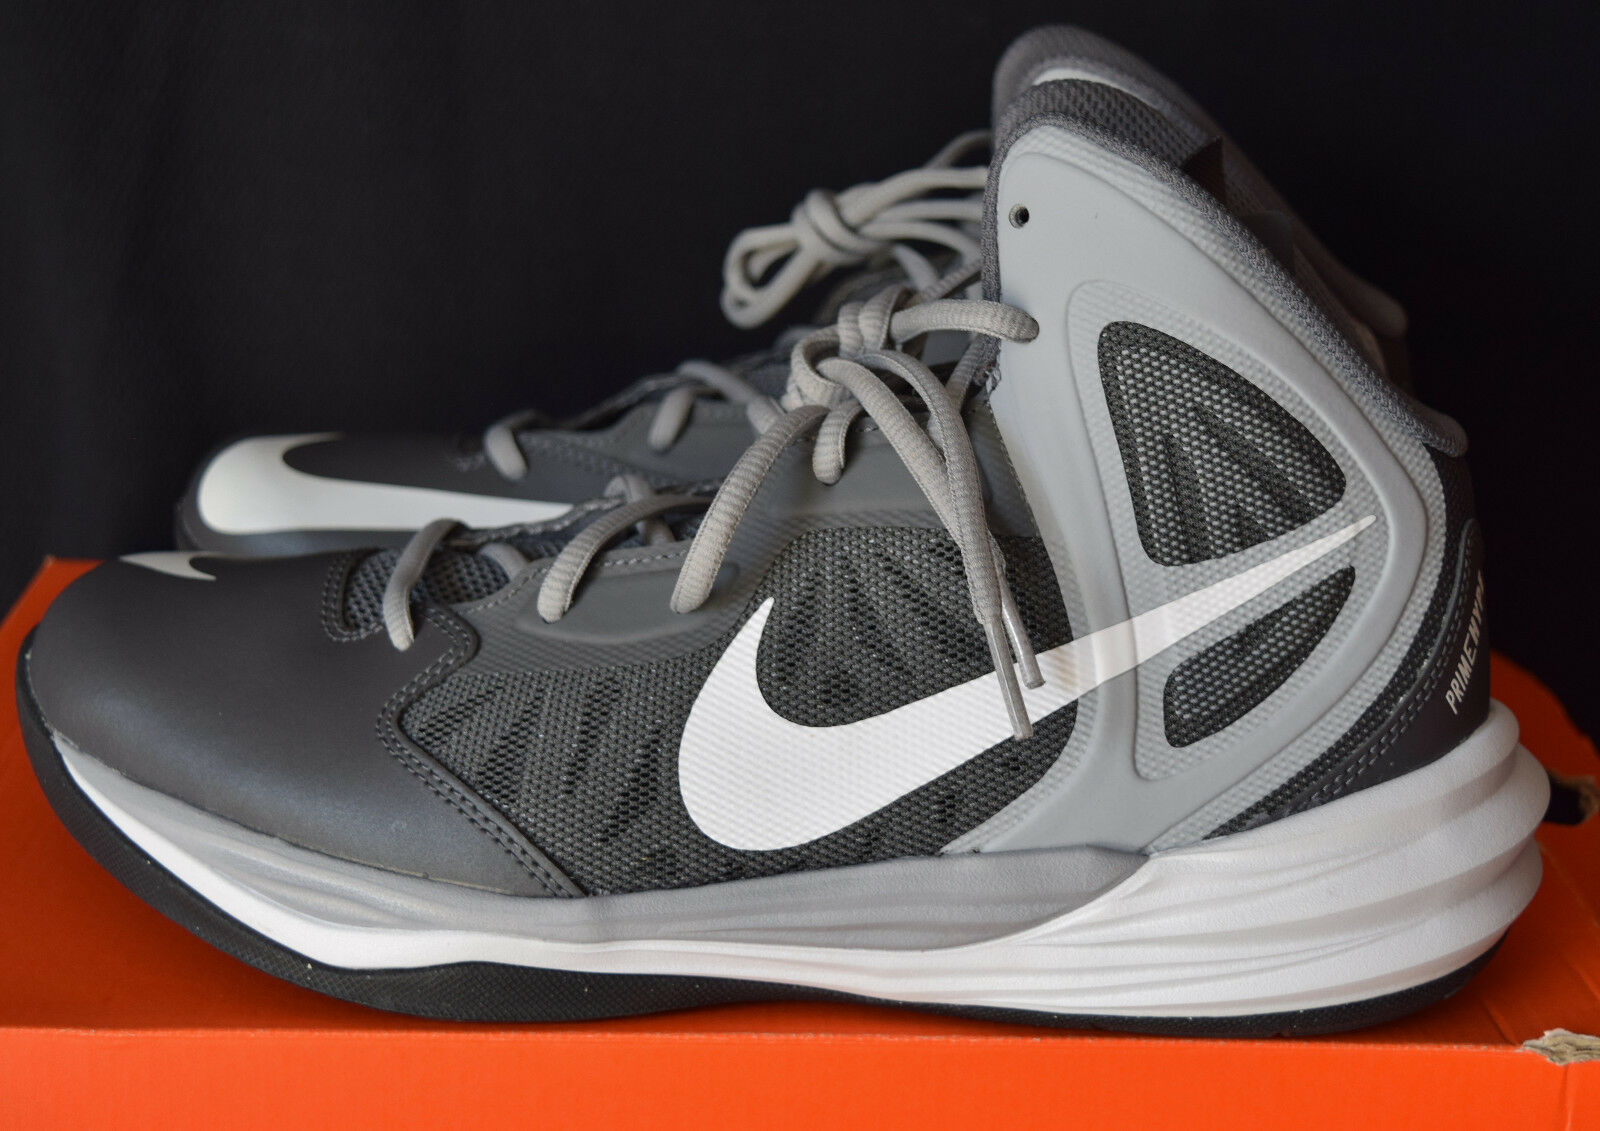 New In Box Nike Prime Hype DF Mens 10 Basketball Shoes Slate, Grey, White